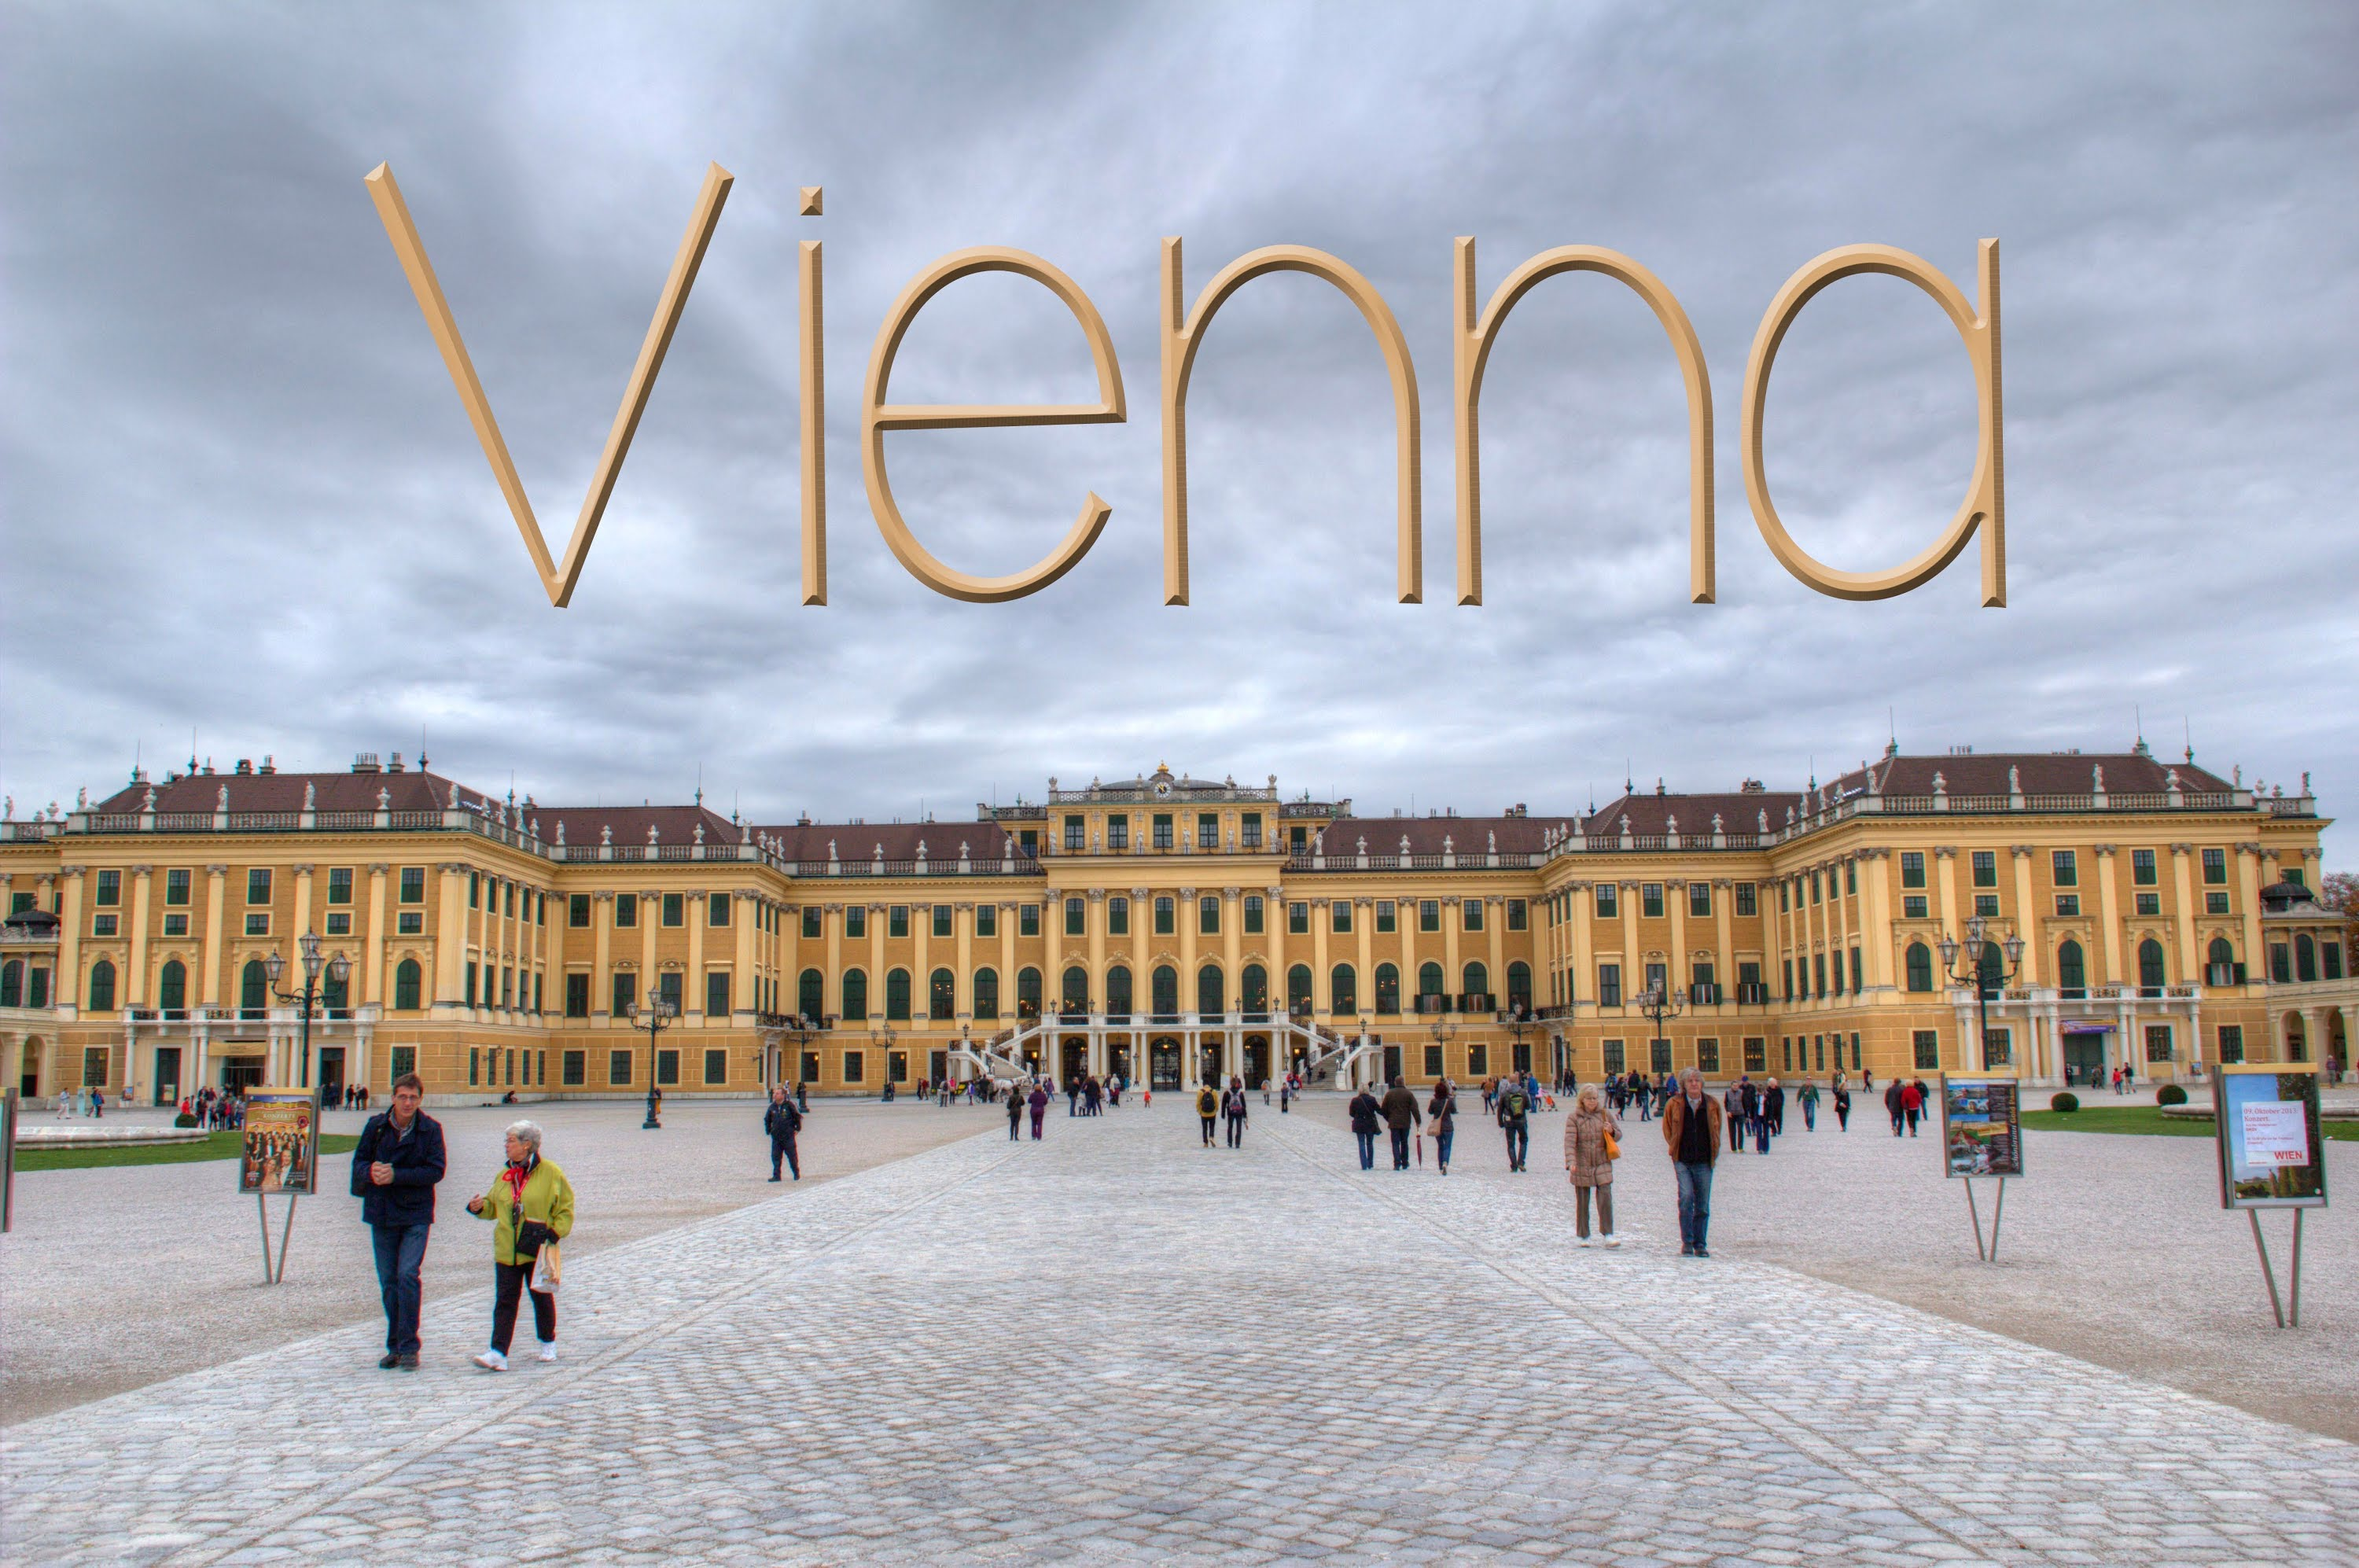 City of Vienna uses Blockchain to increase Security of Government Data